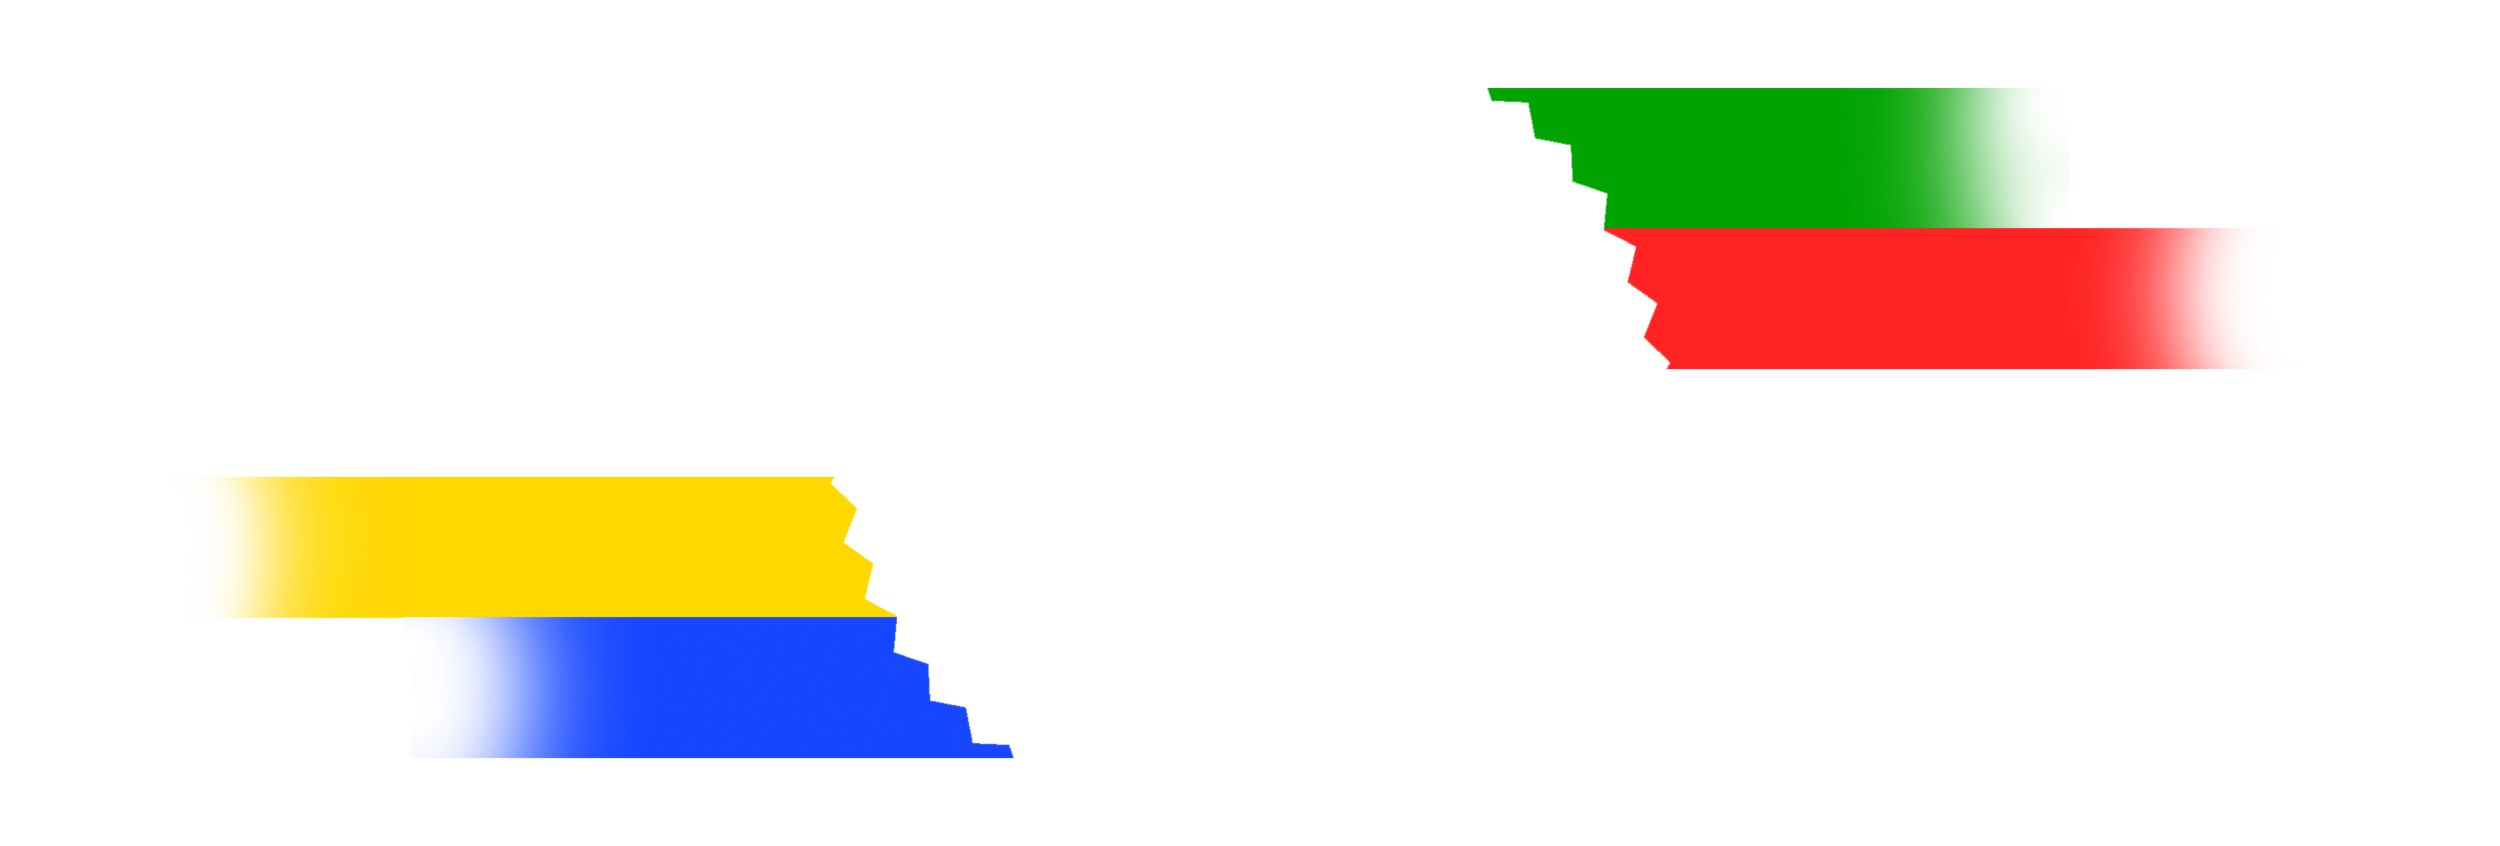 goodtv website logo header.png